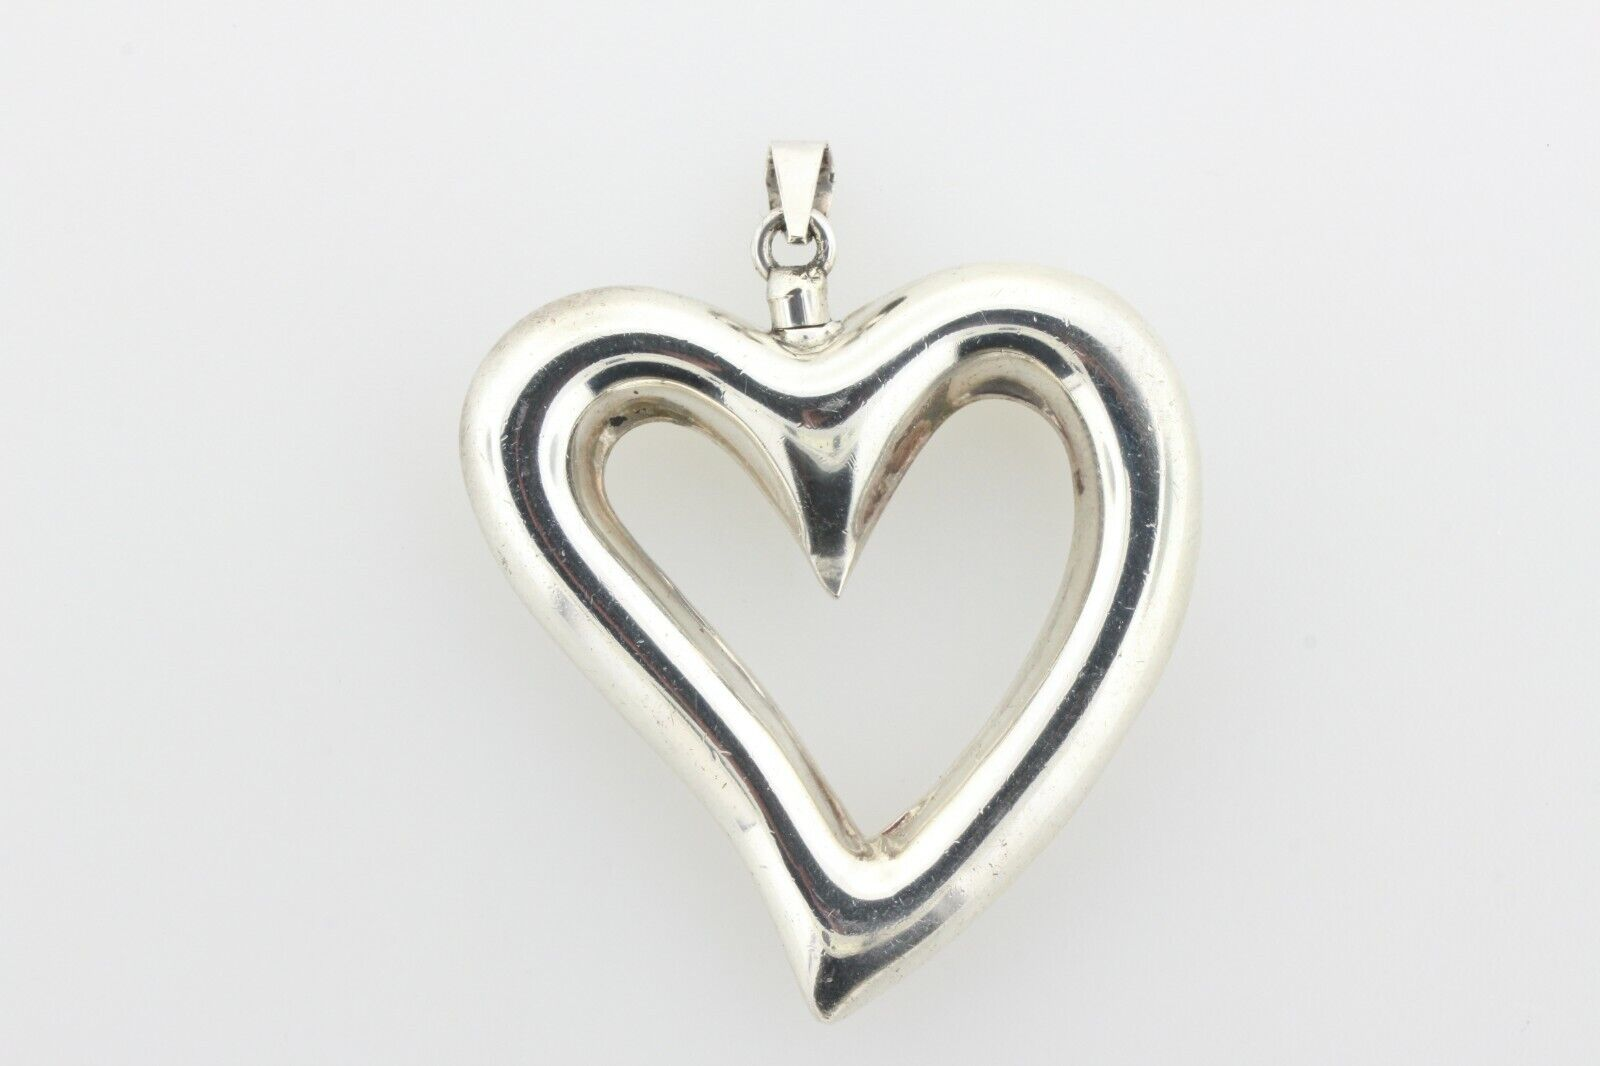 Vintage Sterling Silver Heart Screw Top Poison Pe… - image 4